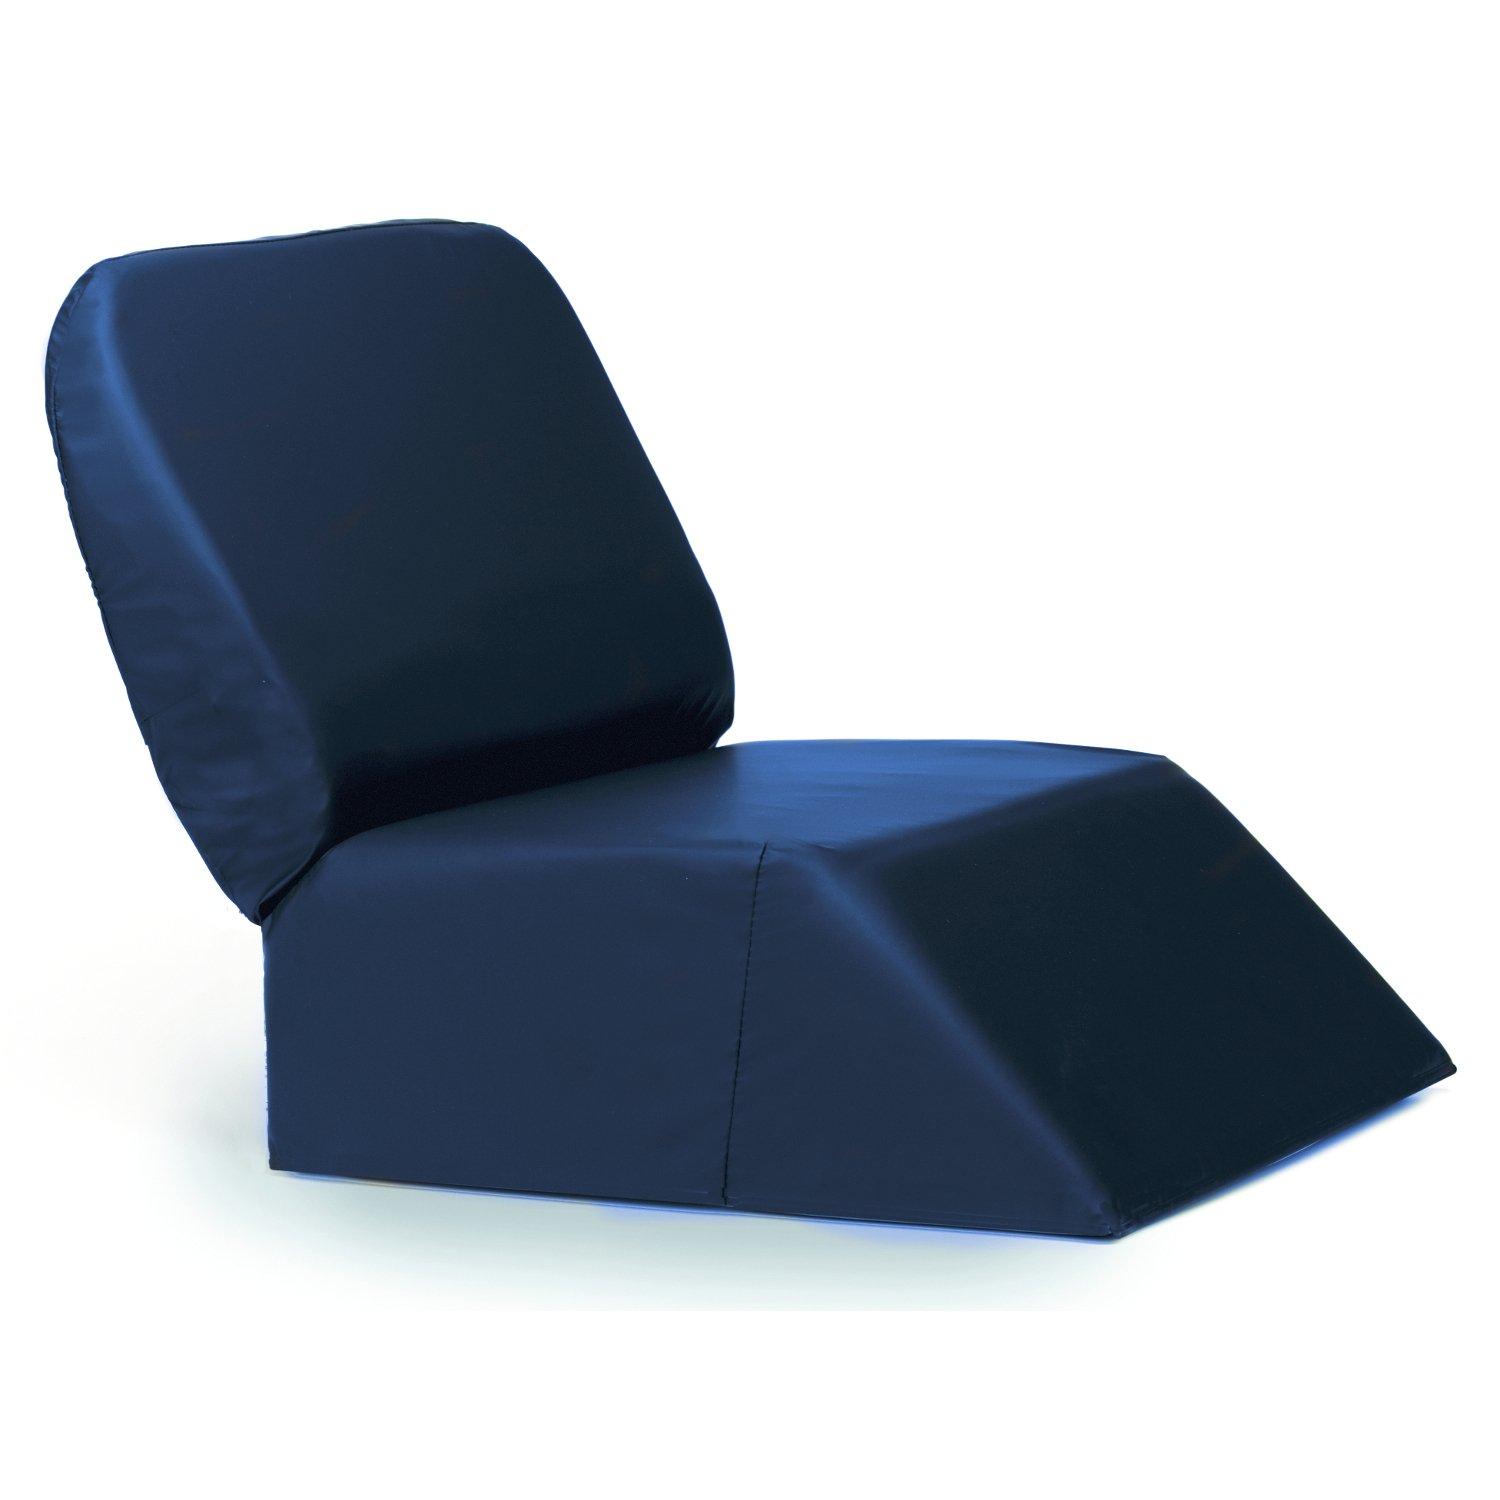 Dental Chair Child Booster Memory Foam - 6100-BLUE by Blue Chip Medical Products, Inc. (Image #1)